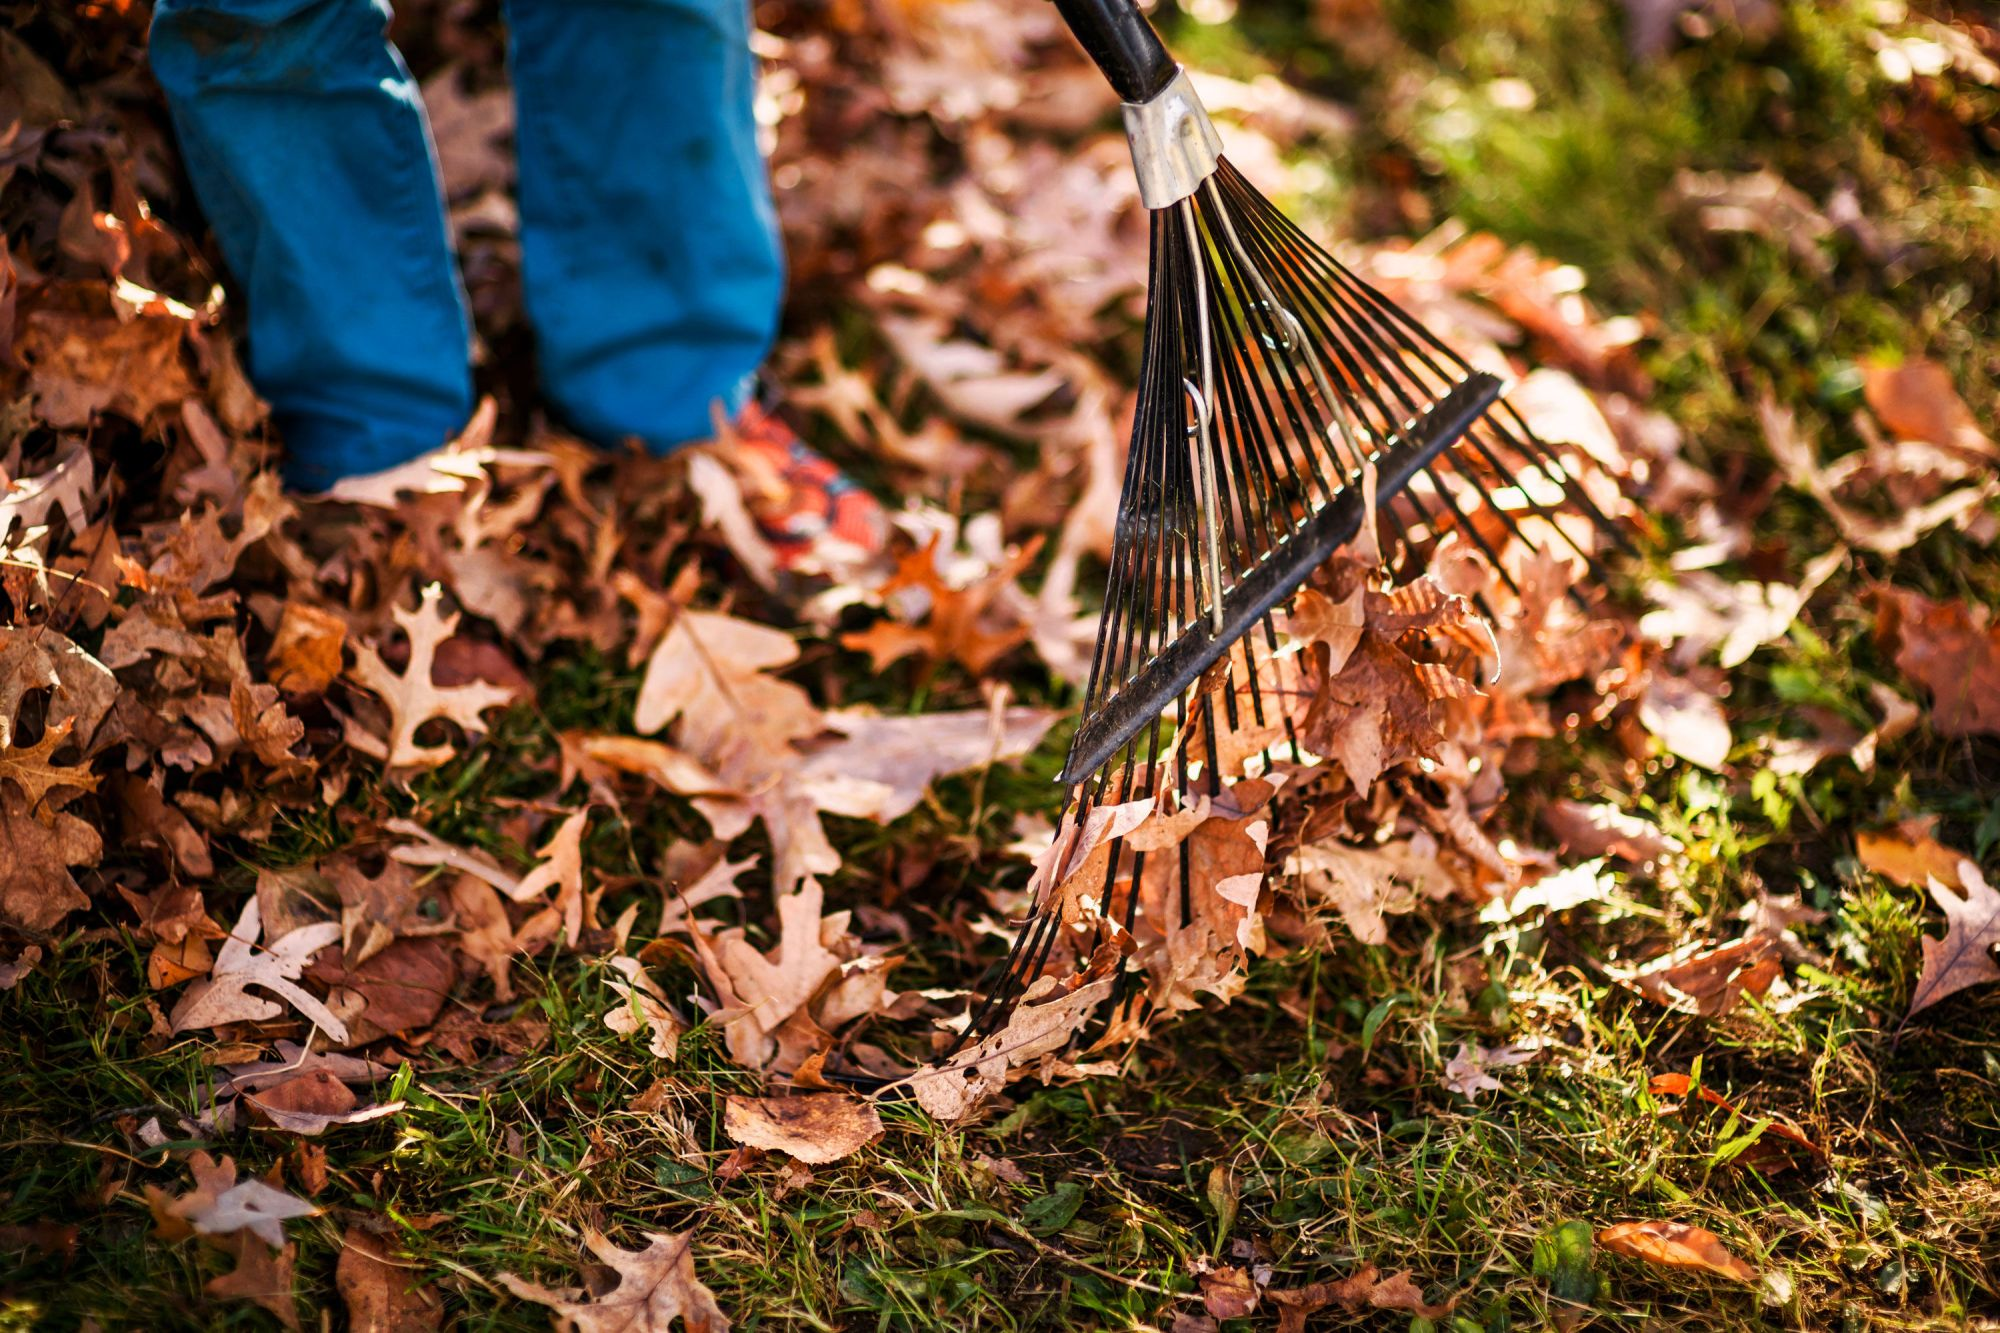 hight resolution of does raking leaves make you a bad person